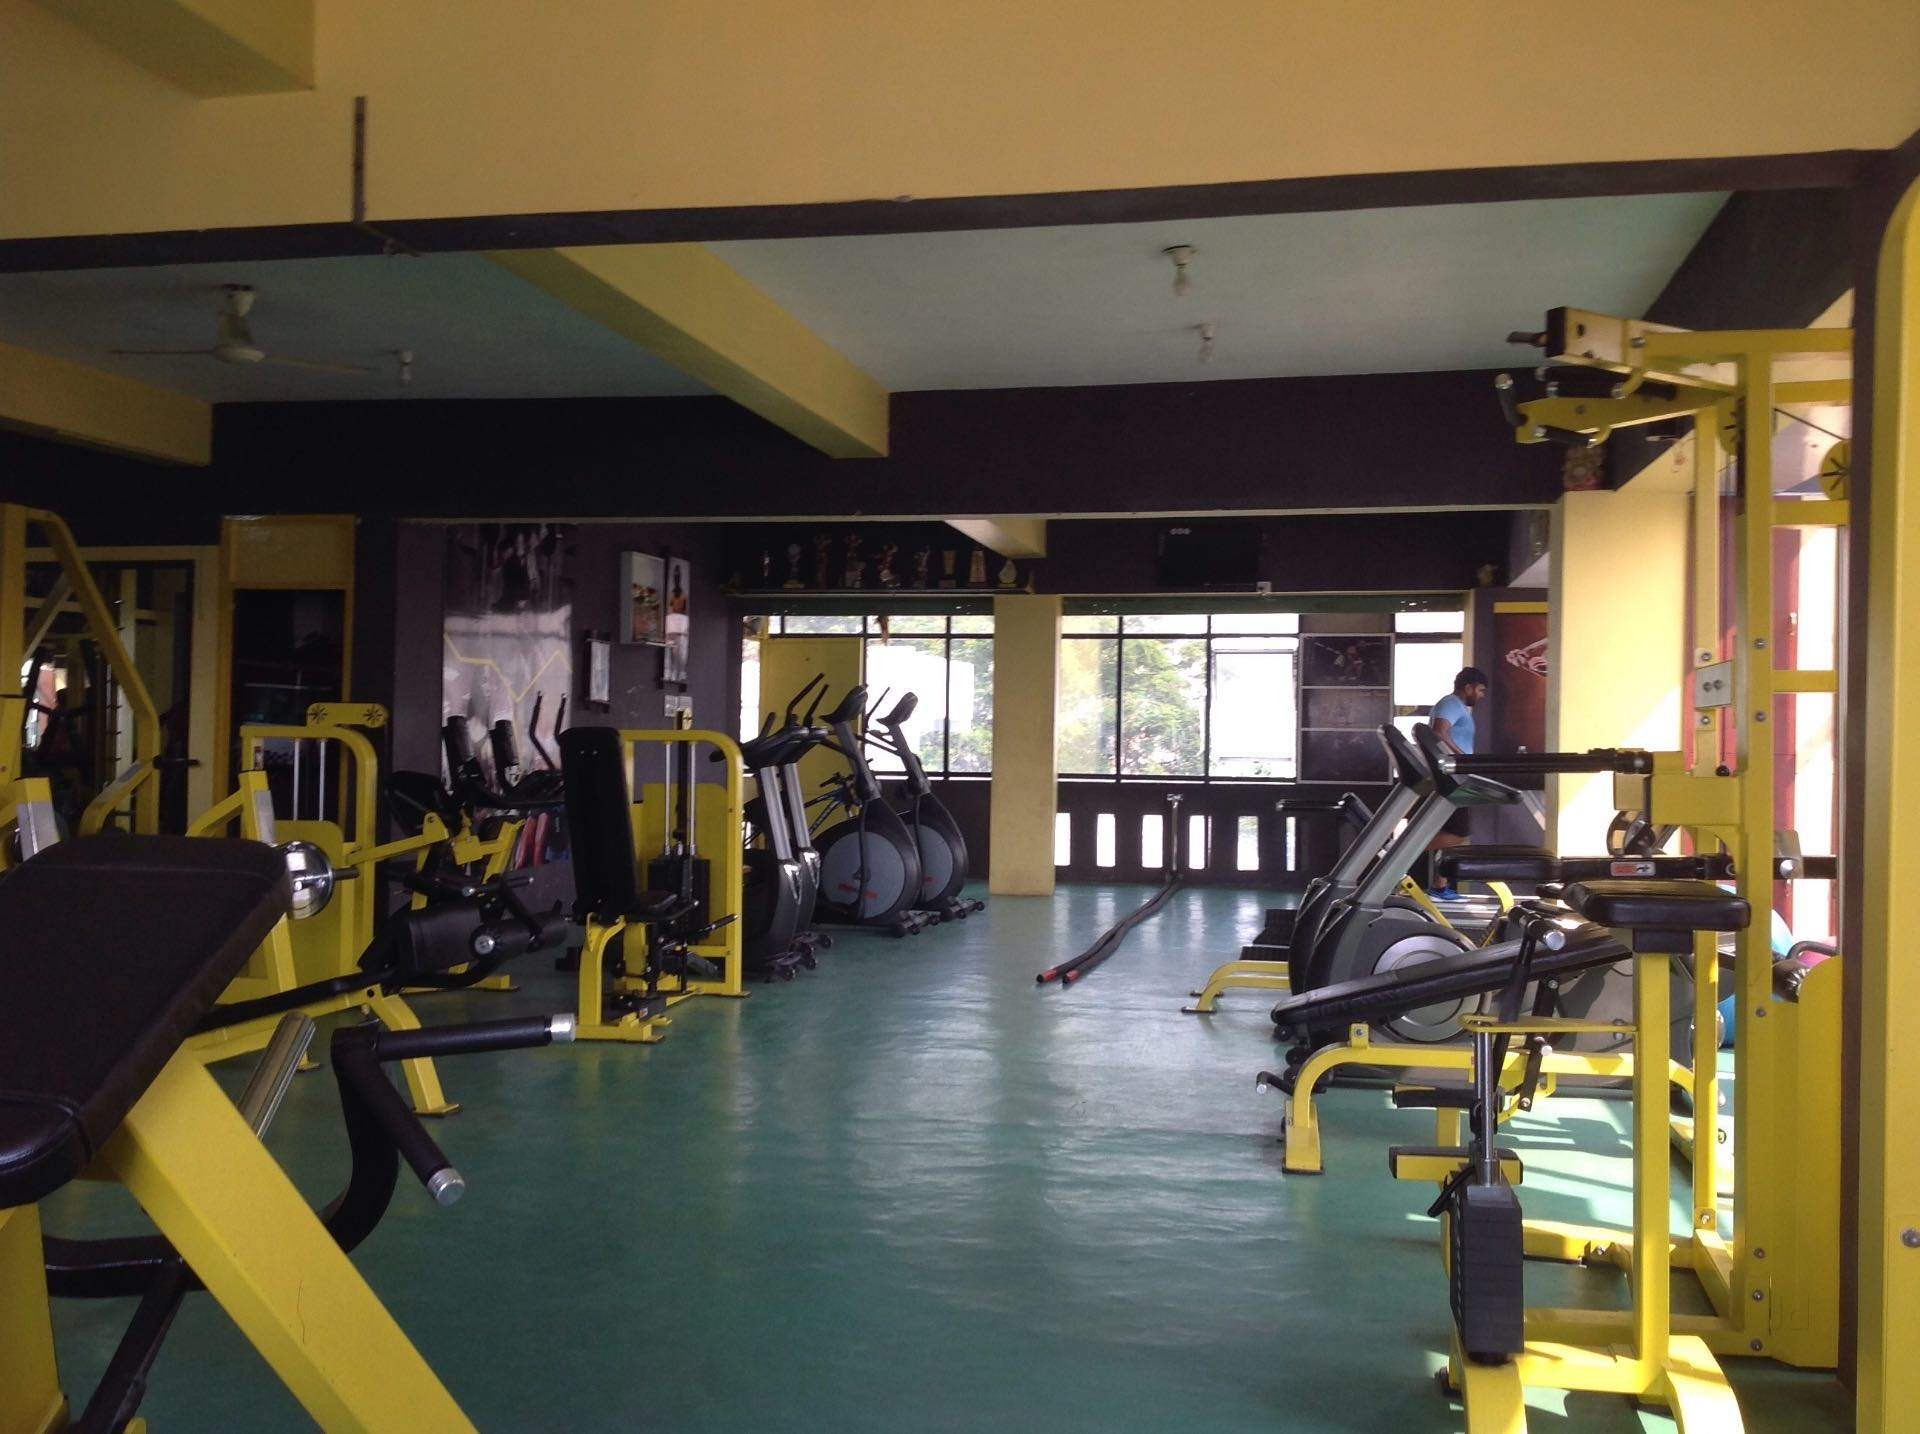 Top gyms in hosur best body building fitness centres justdial